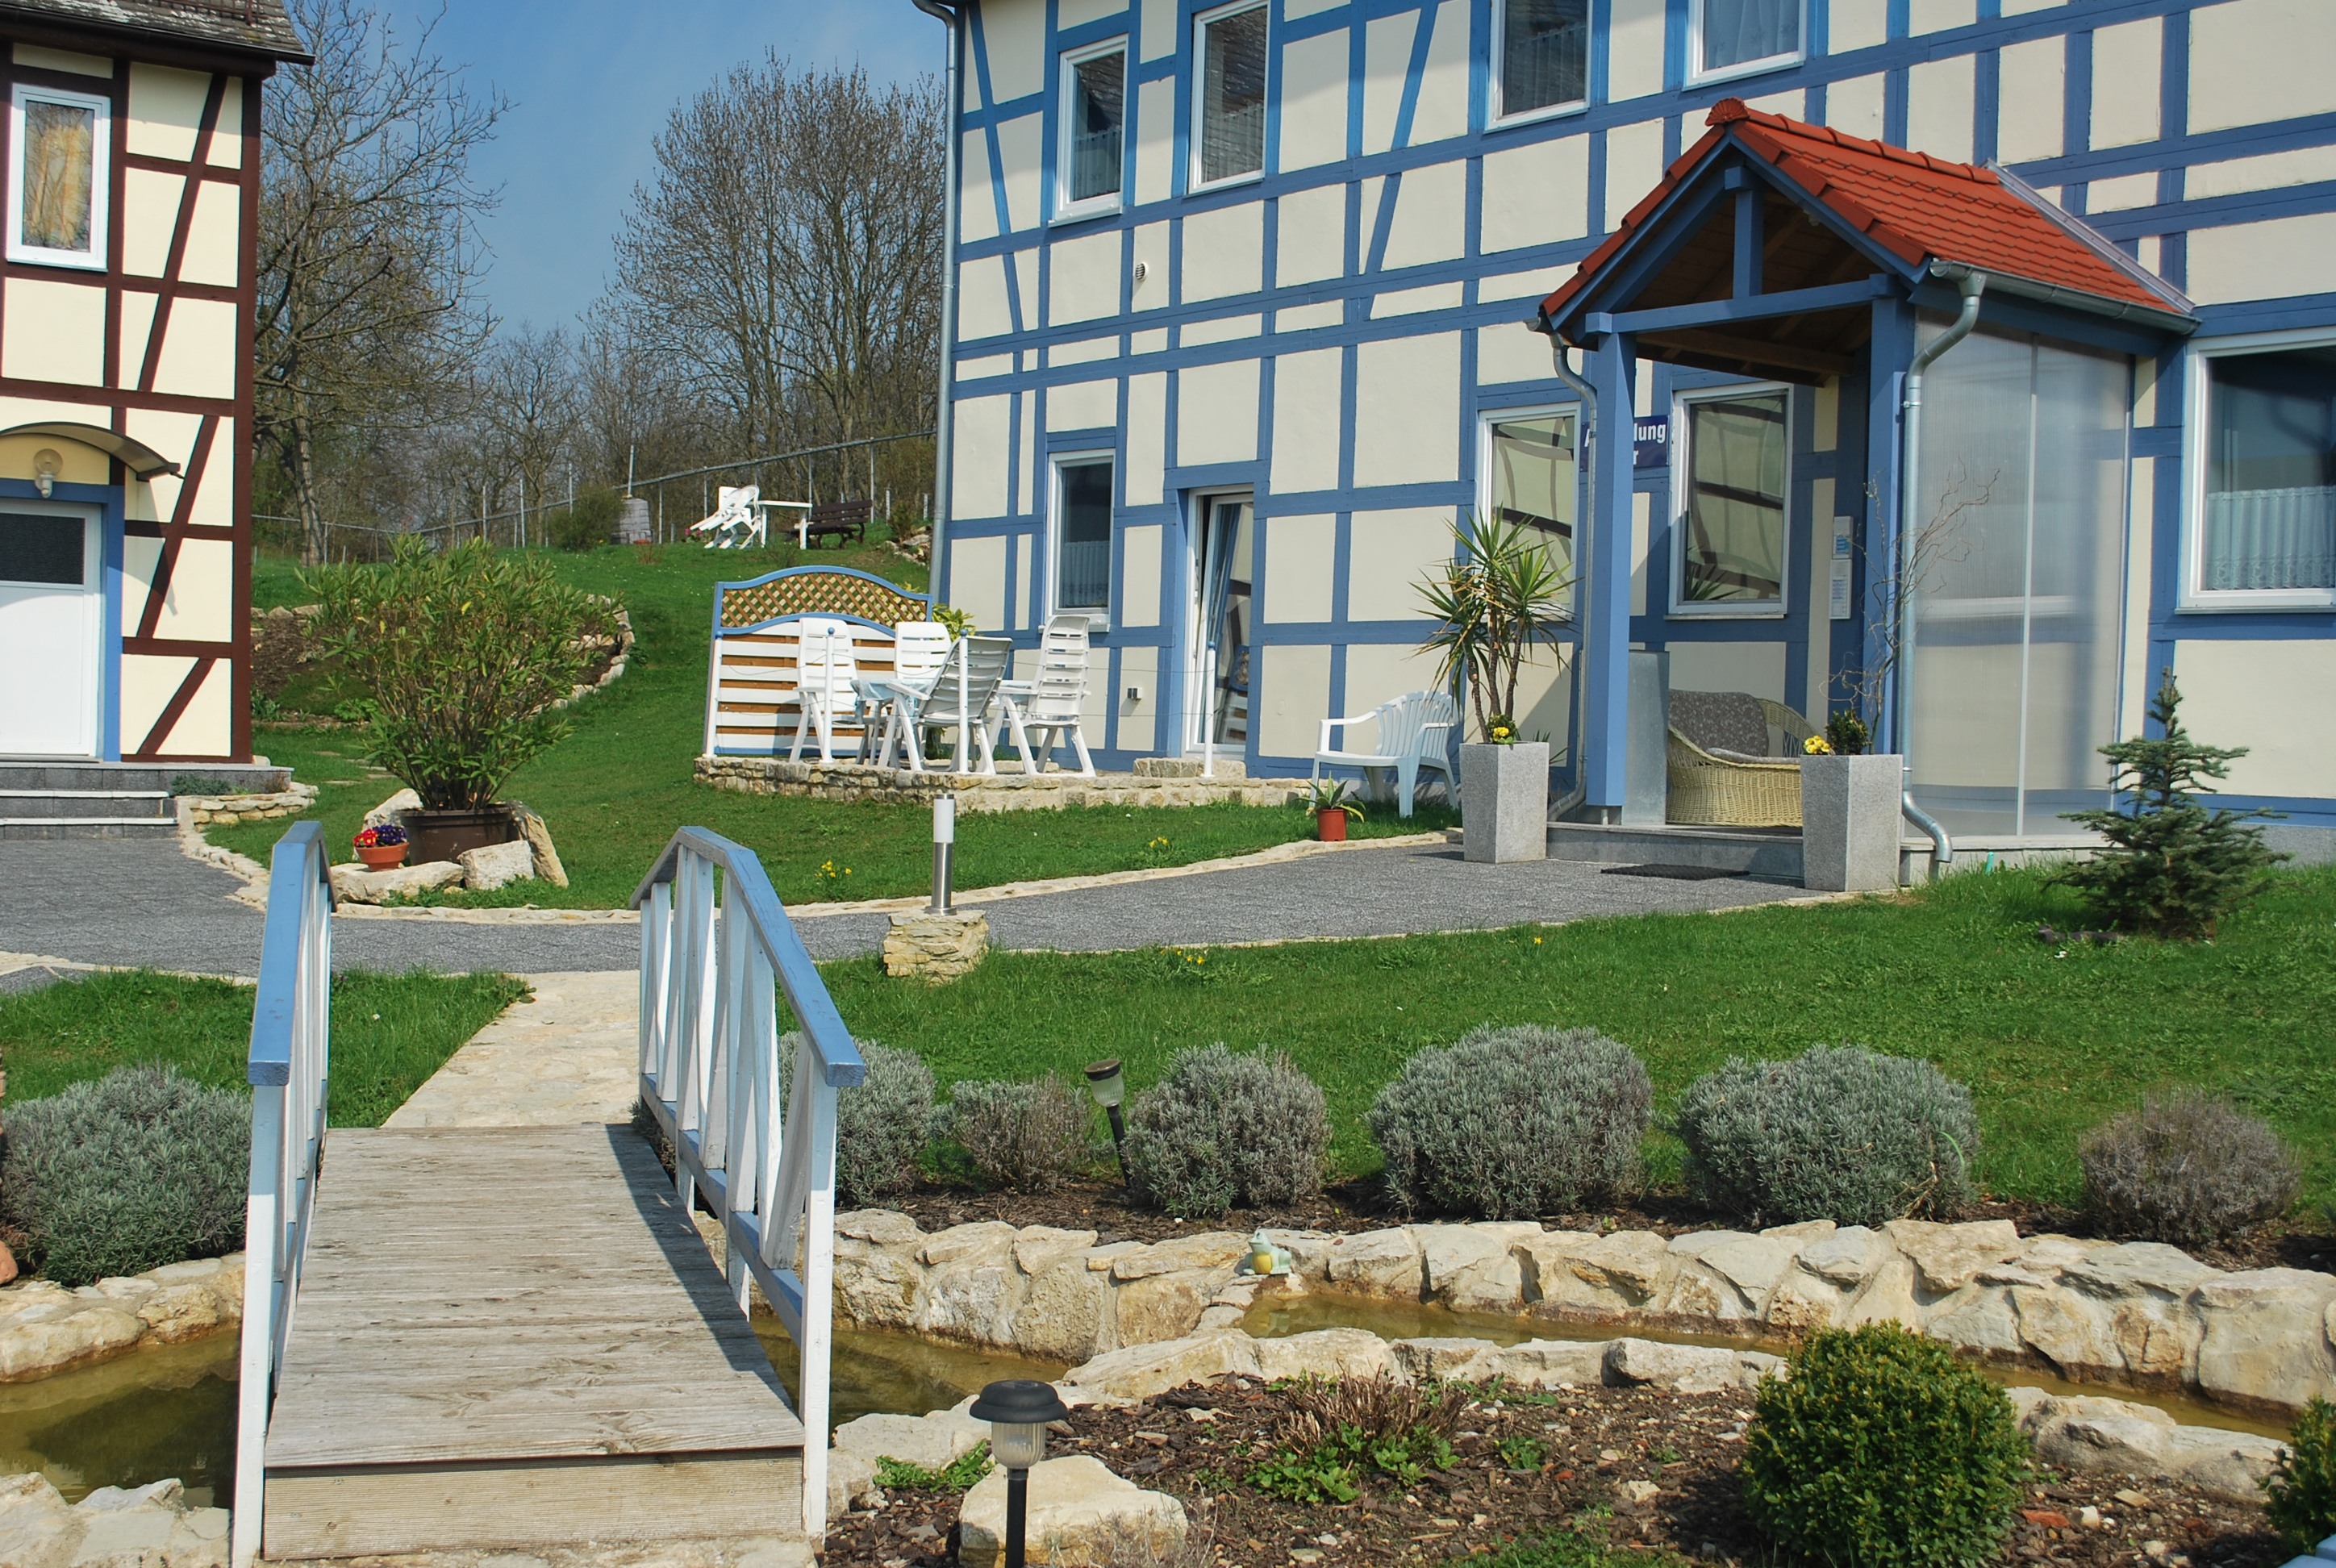 Holiday apartment Seepferdchen (2 Pers- 20m2) (421799), Bad Sulza, Weimar Country, Thuringia, Germany, picture 21